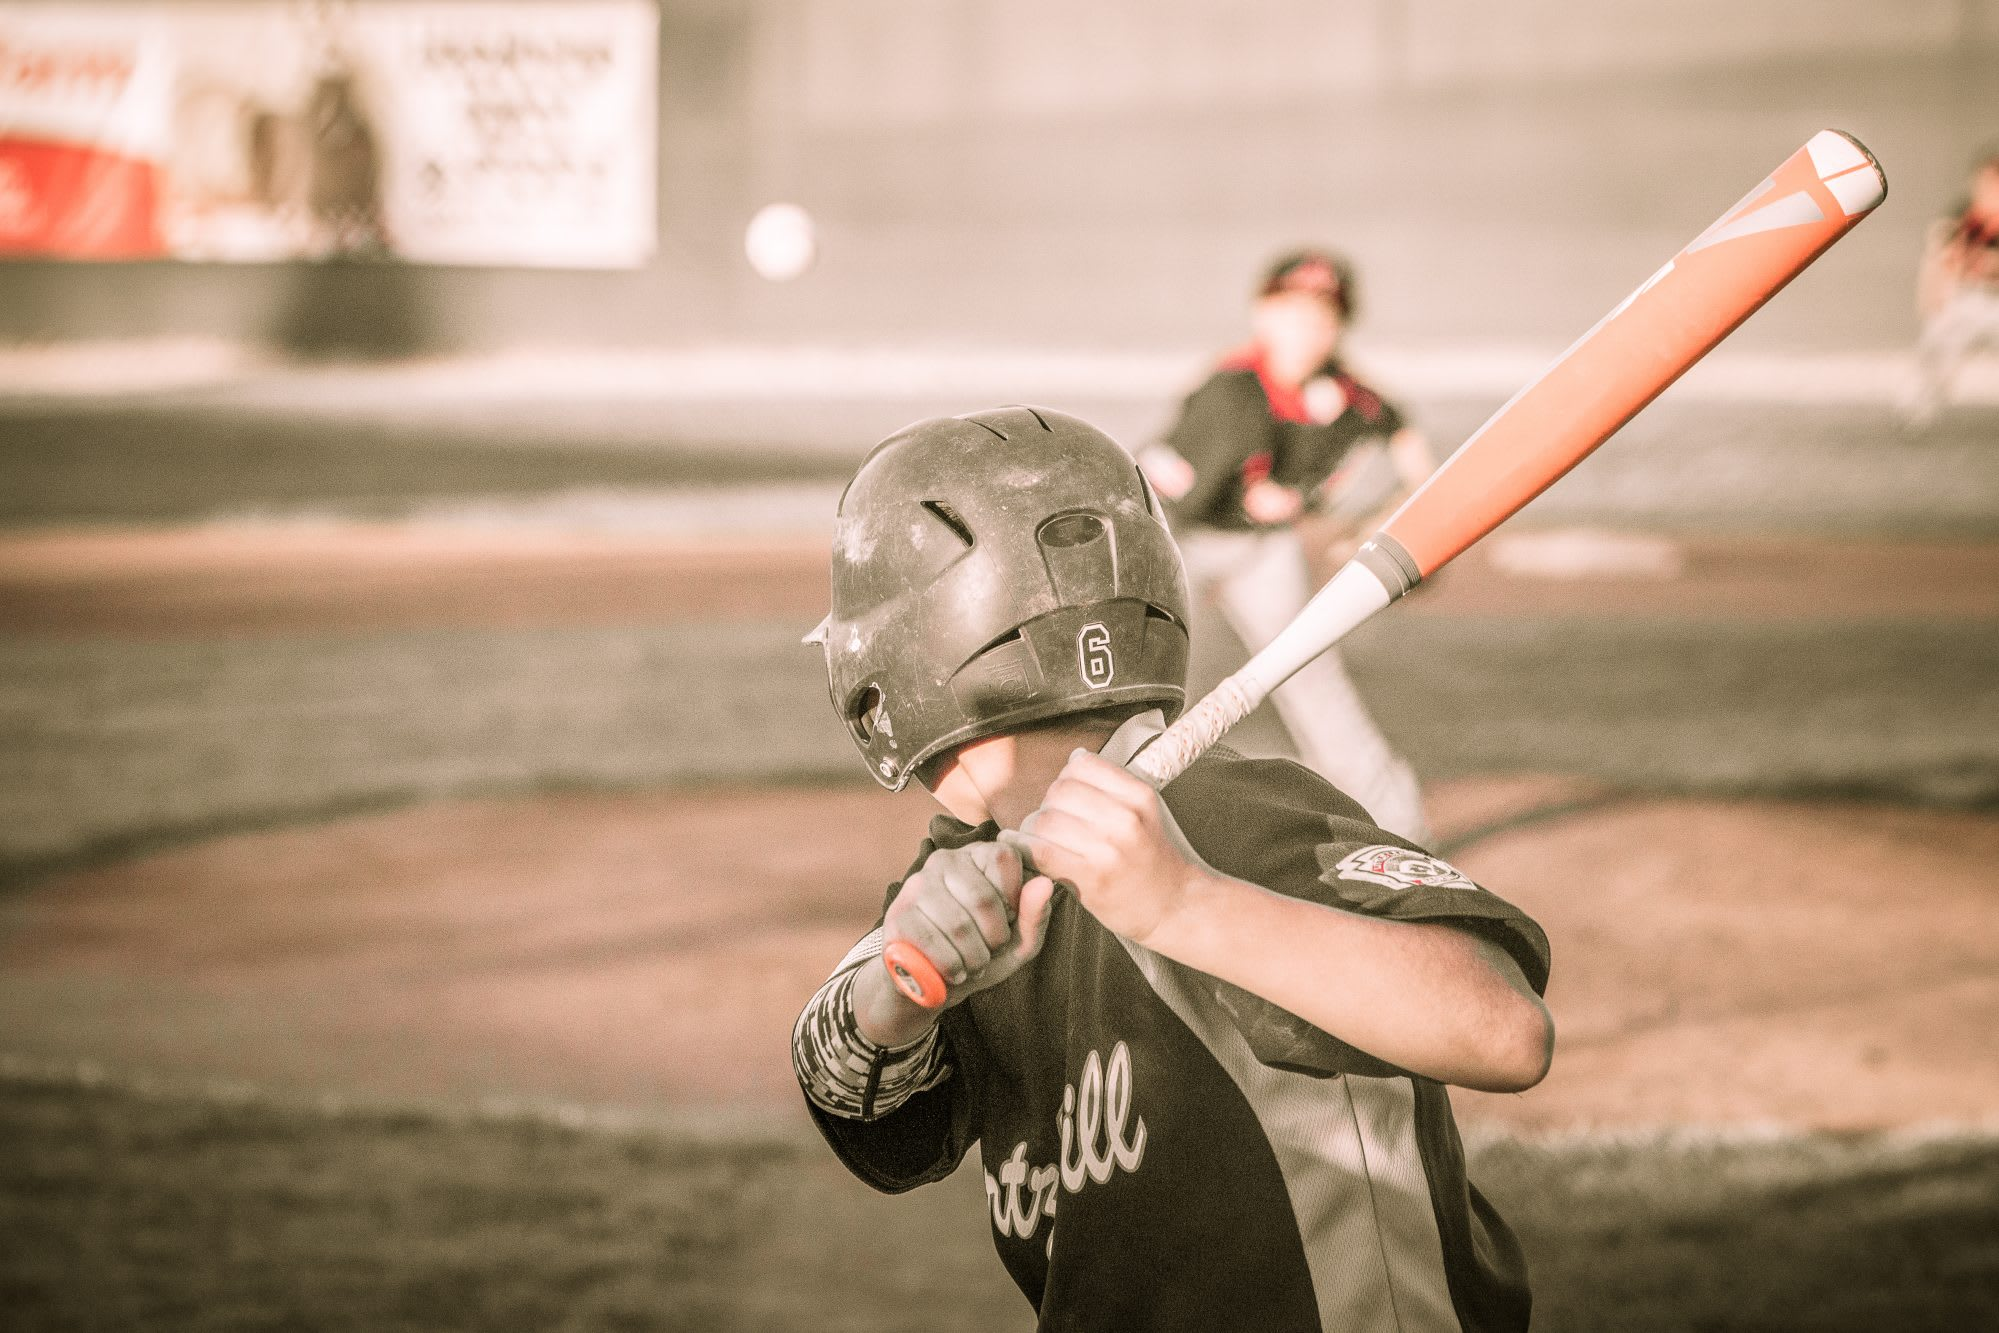 Little League Baseball player swings at pitch